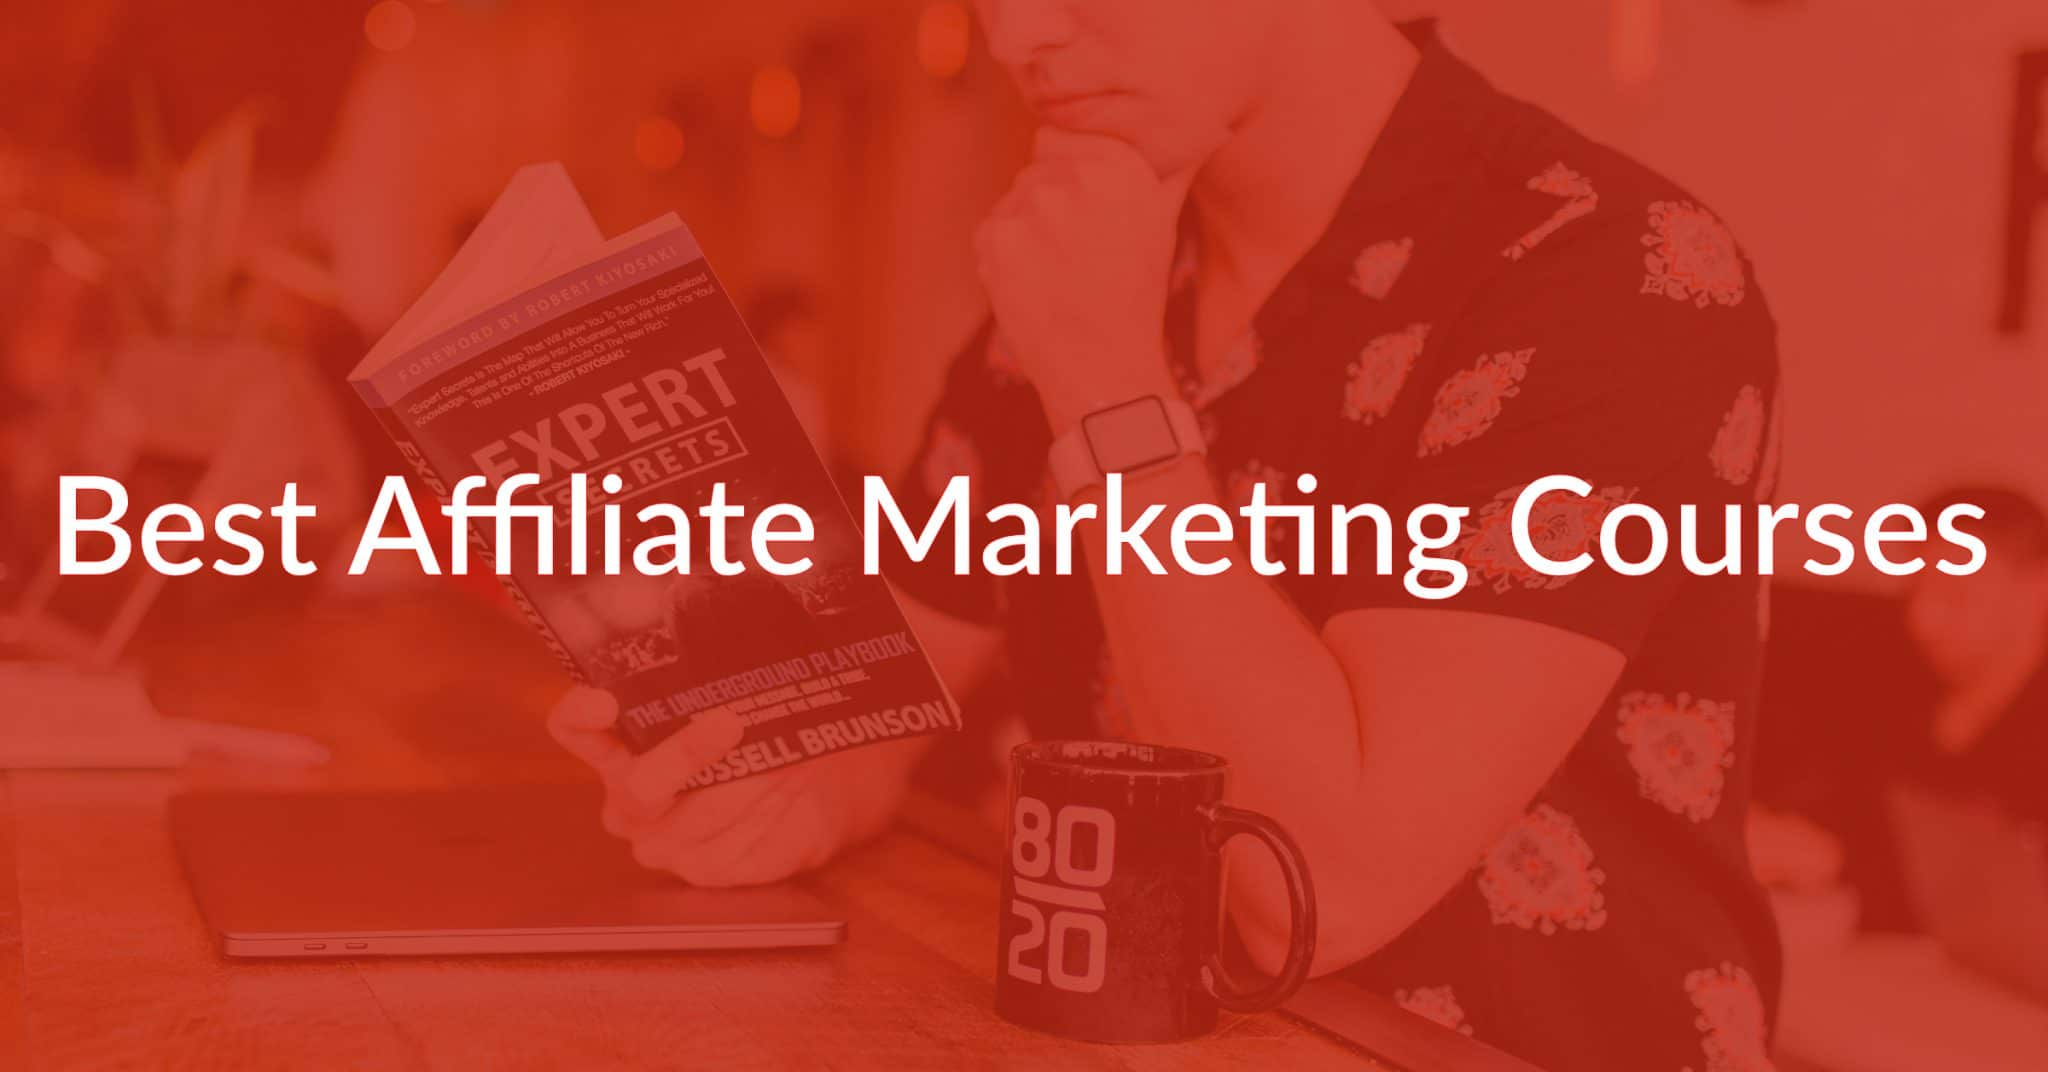 9 Best Affiliate Marketing Courses (And The Ones To Avoid!)